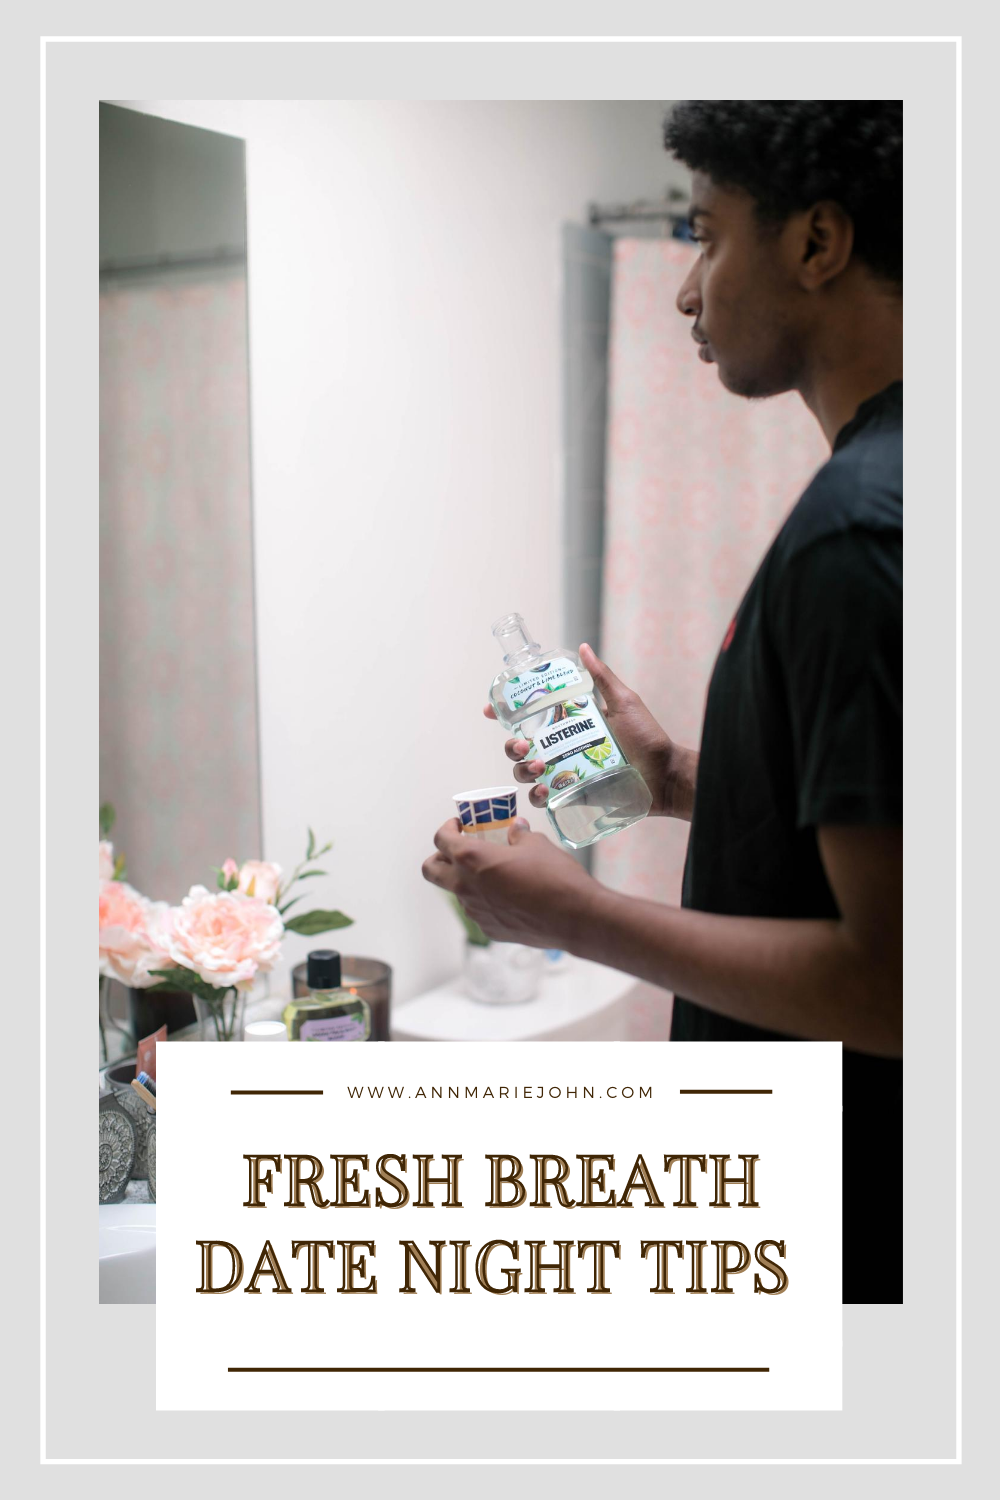 How do you ensure that your breath and smile are date night ready? Find out how your mouth can not only be clean but healthy and bold!